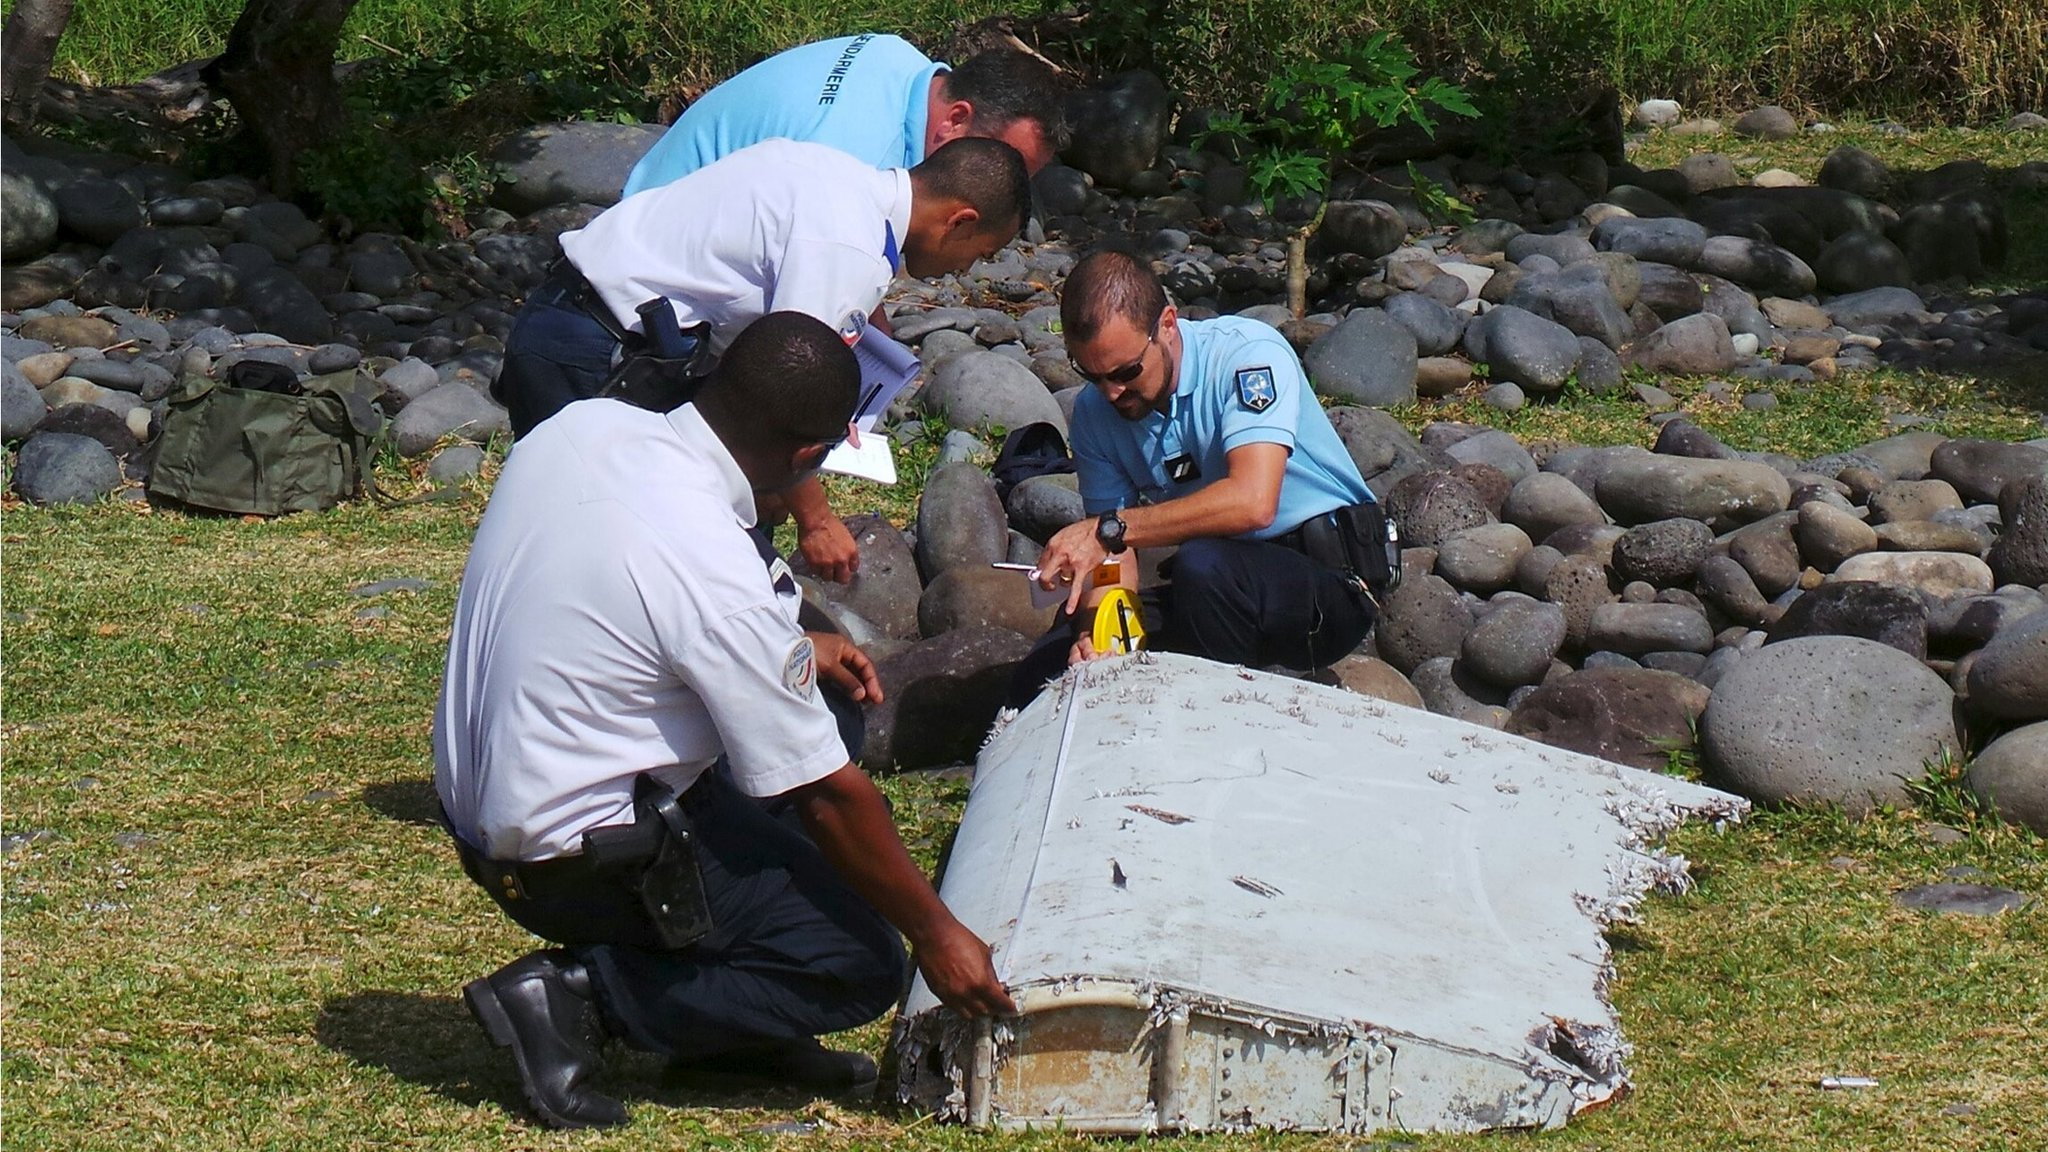 Debris found on an Indian Ocean island is being taken to France to determine if it is from the missing airliner MH370, Malaysia's PM says.